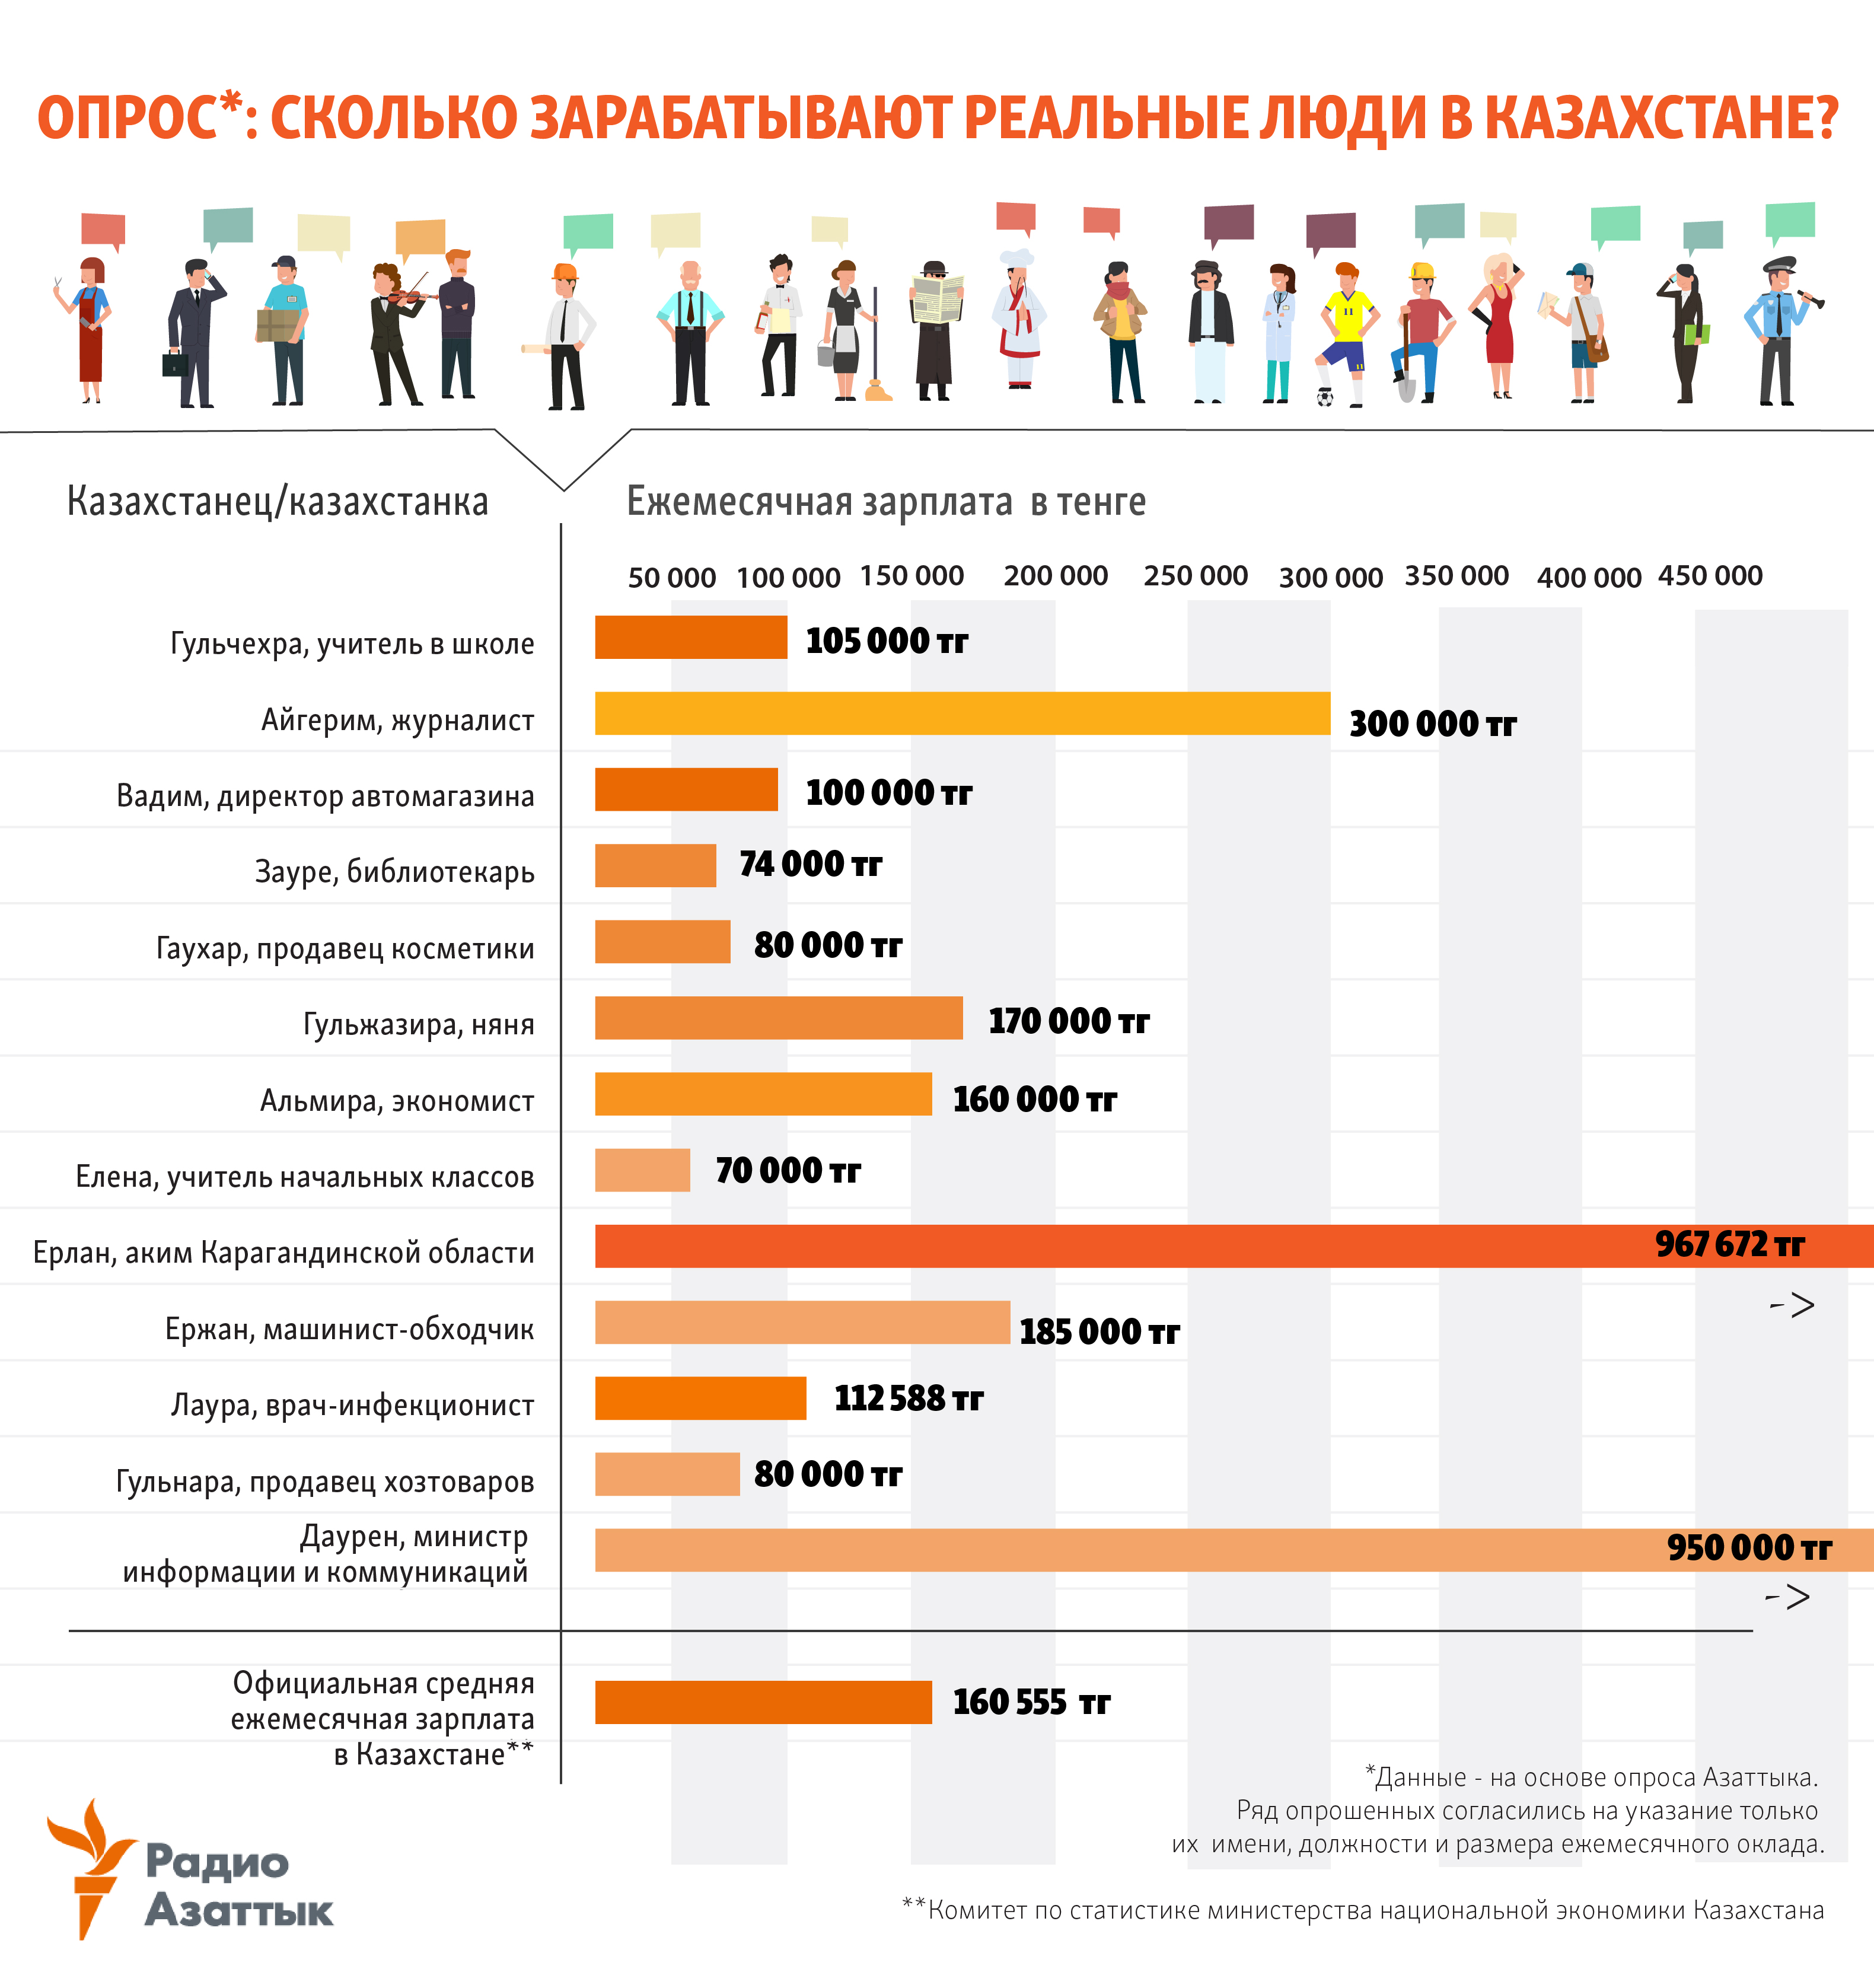 infographic about salaries in Kazakhstan